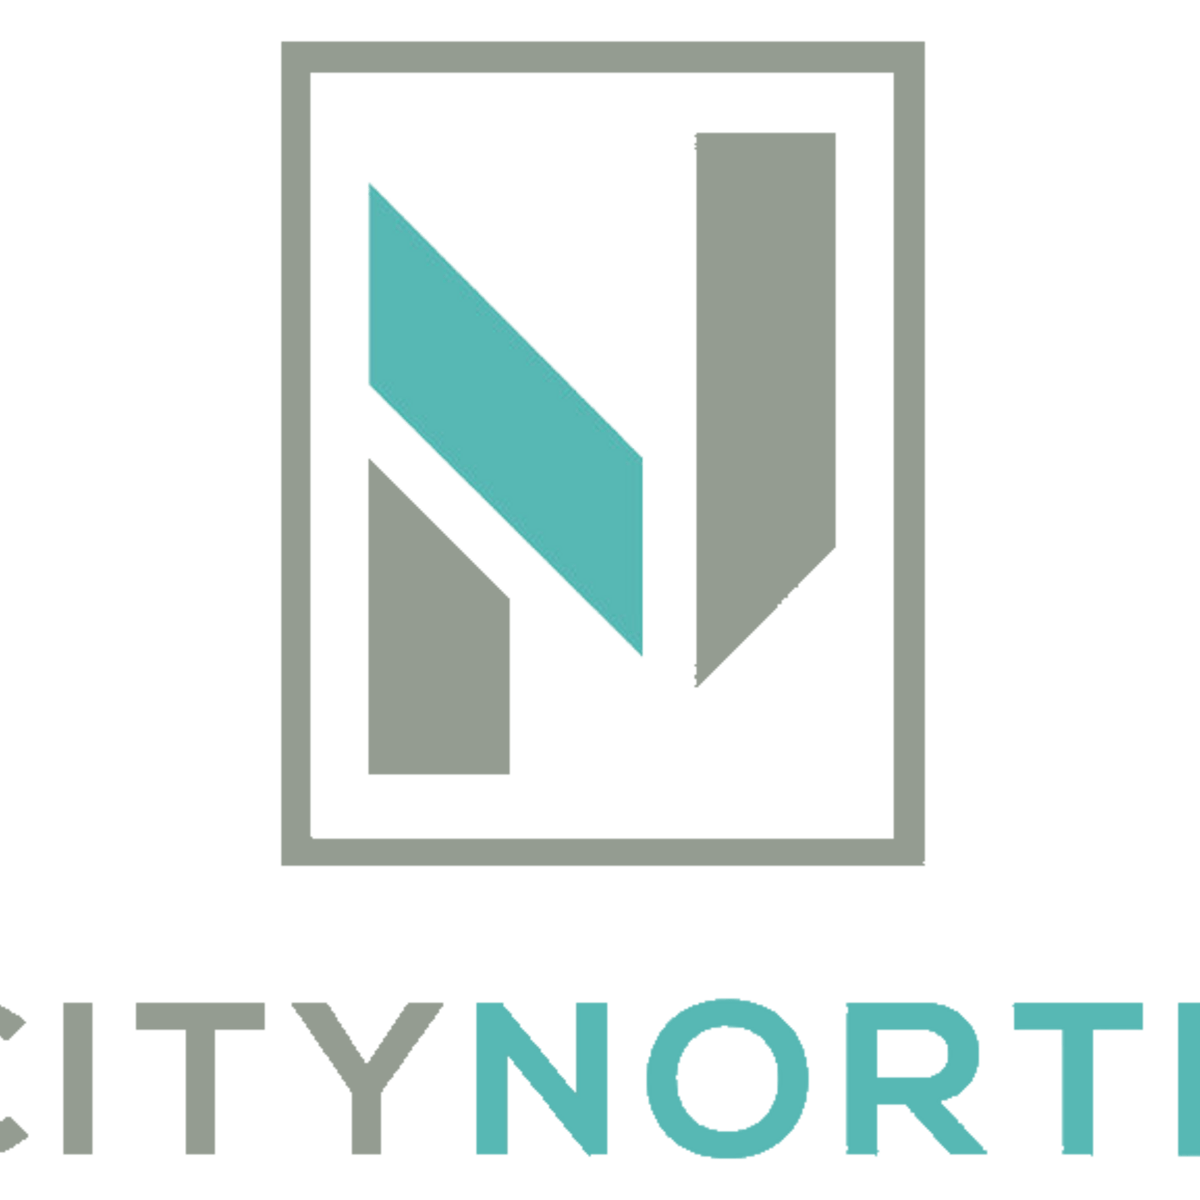 City North Apartments